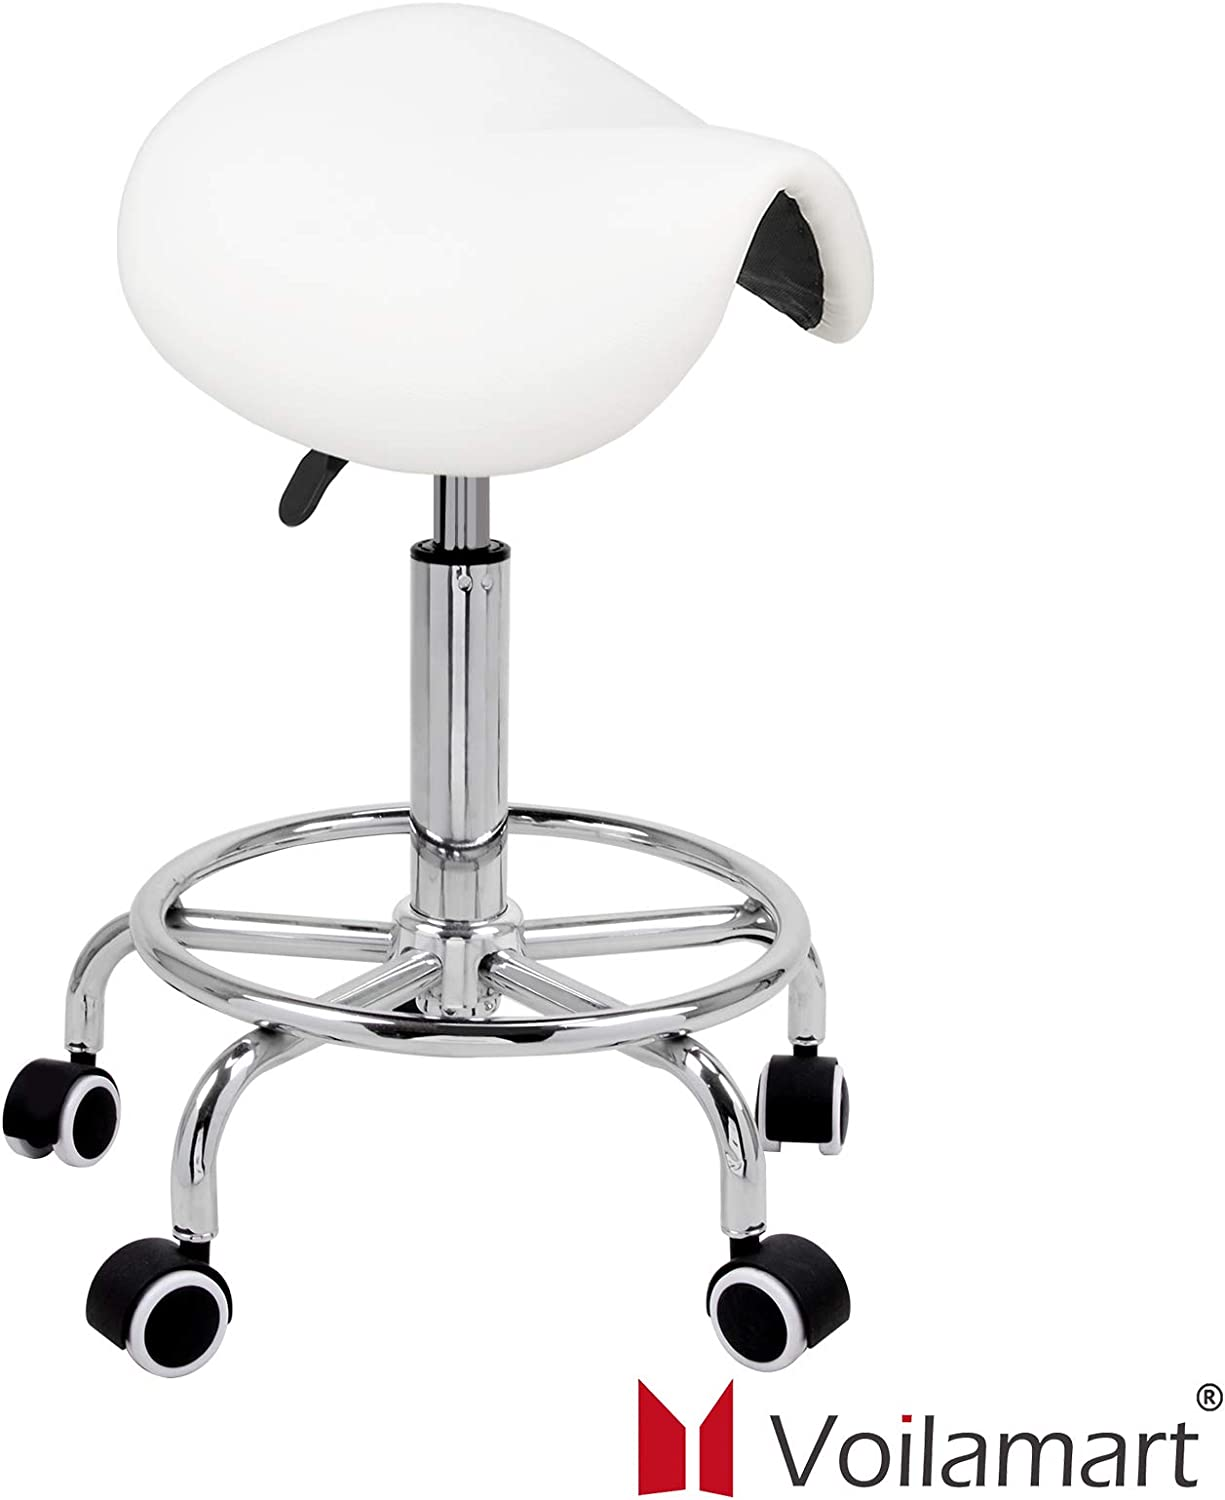 Adjustable Manicure Stool with High Grade Synthetic Leather and Thick Cushion for Domestic Salon and Spa Commercial Tattoo Therapy Chair